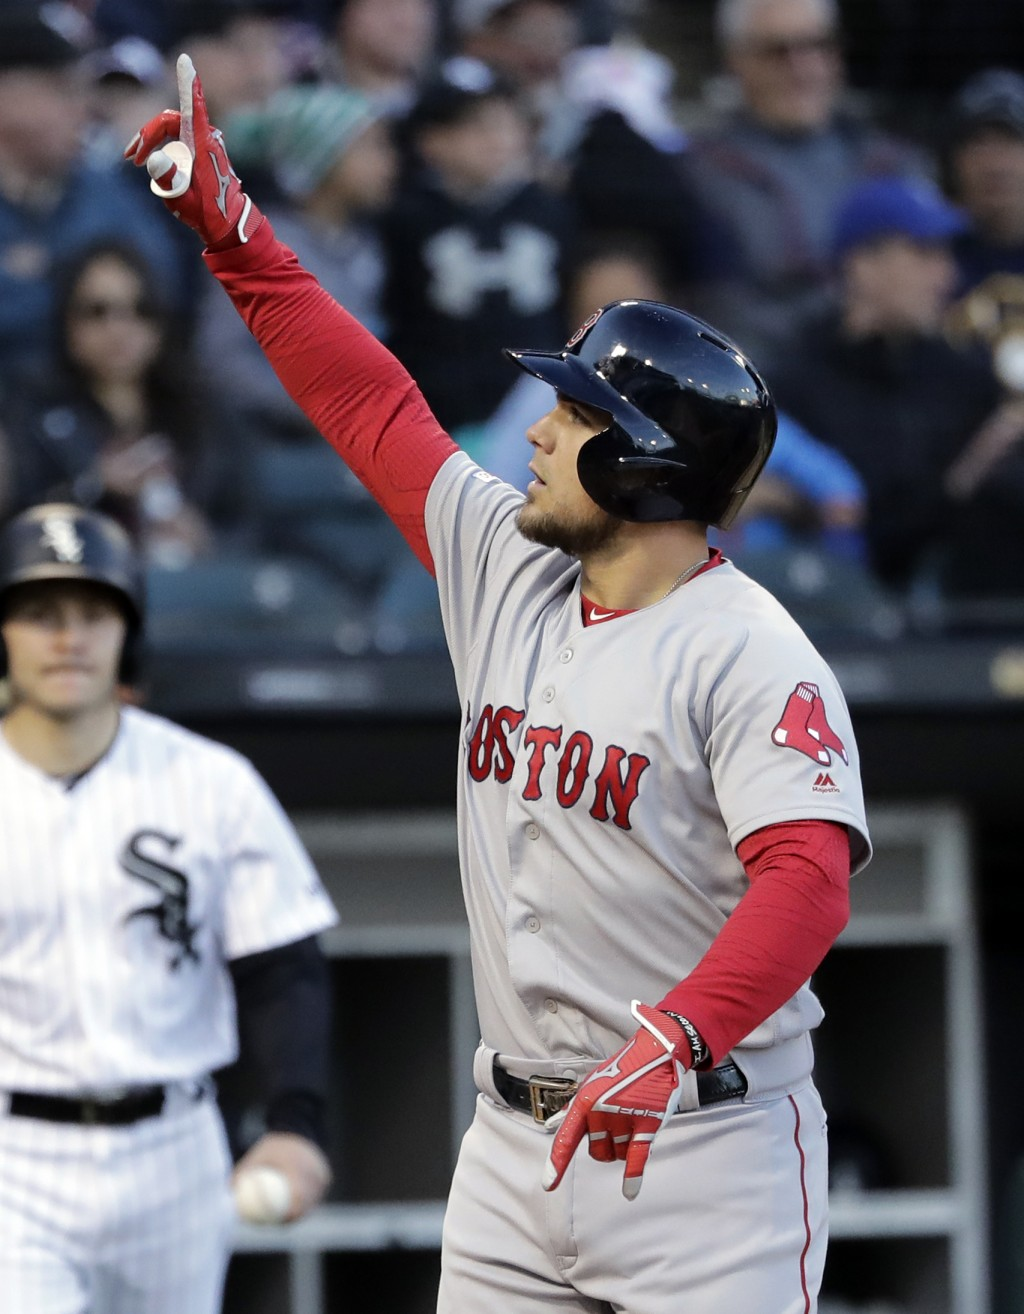 Boston Red Sox's Michael Chavis celebrates after hitting a solo home run against the Chicago White Sox during the third inning of a baseball game in C